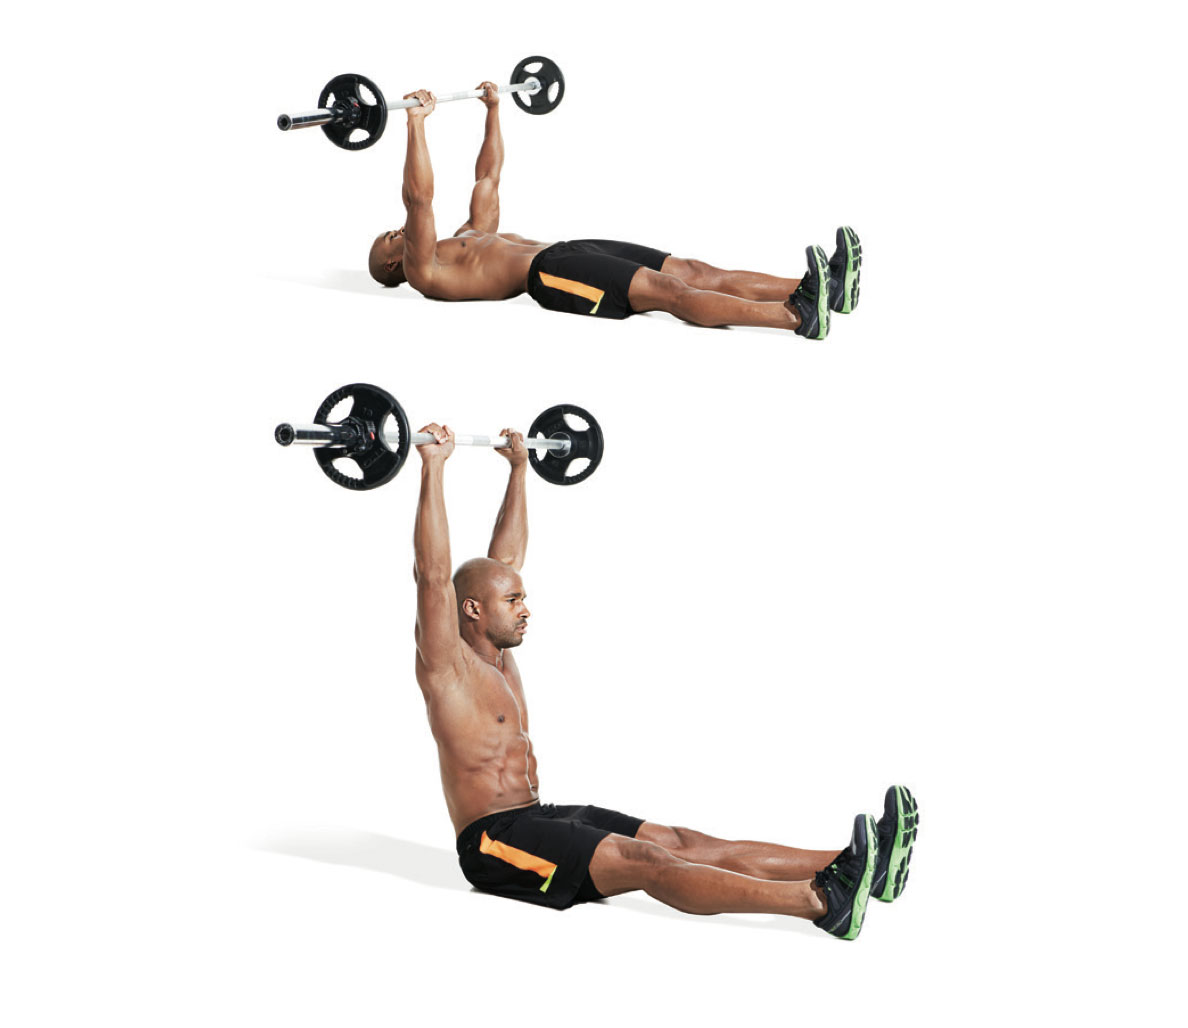 Best Abs Exercises And Abdominal Workout Moves To Get A 6 Pack